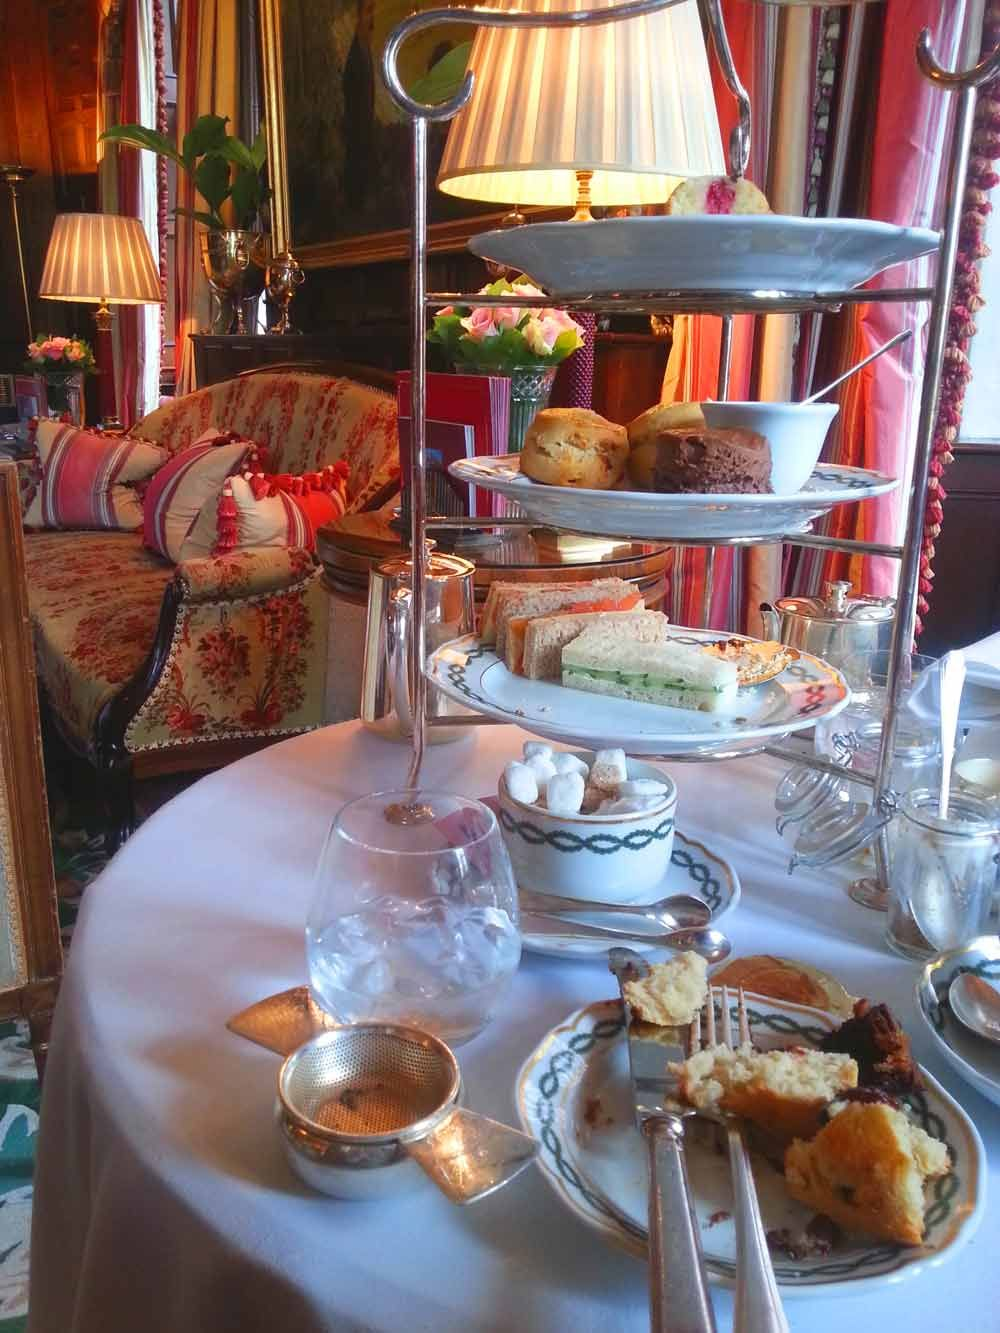 Sandwiches and scones: A Royal Afternoon Tea at The Milestone Hotel